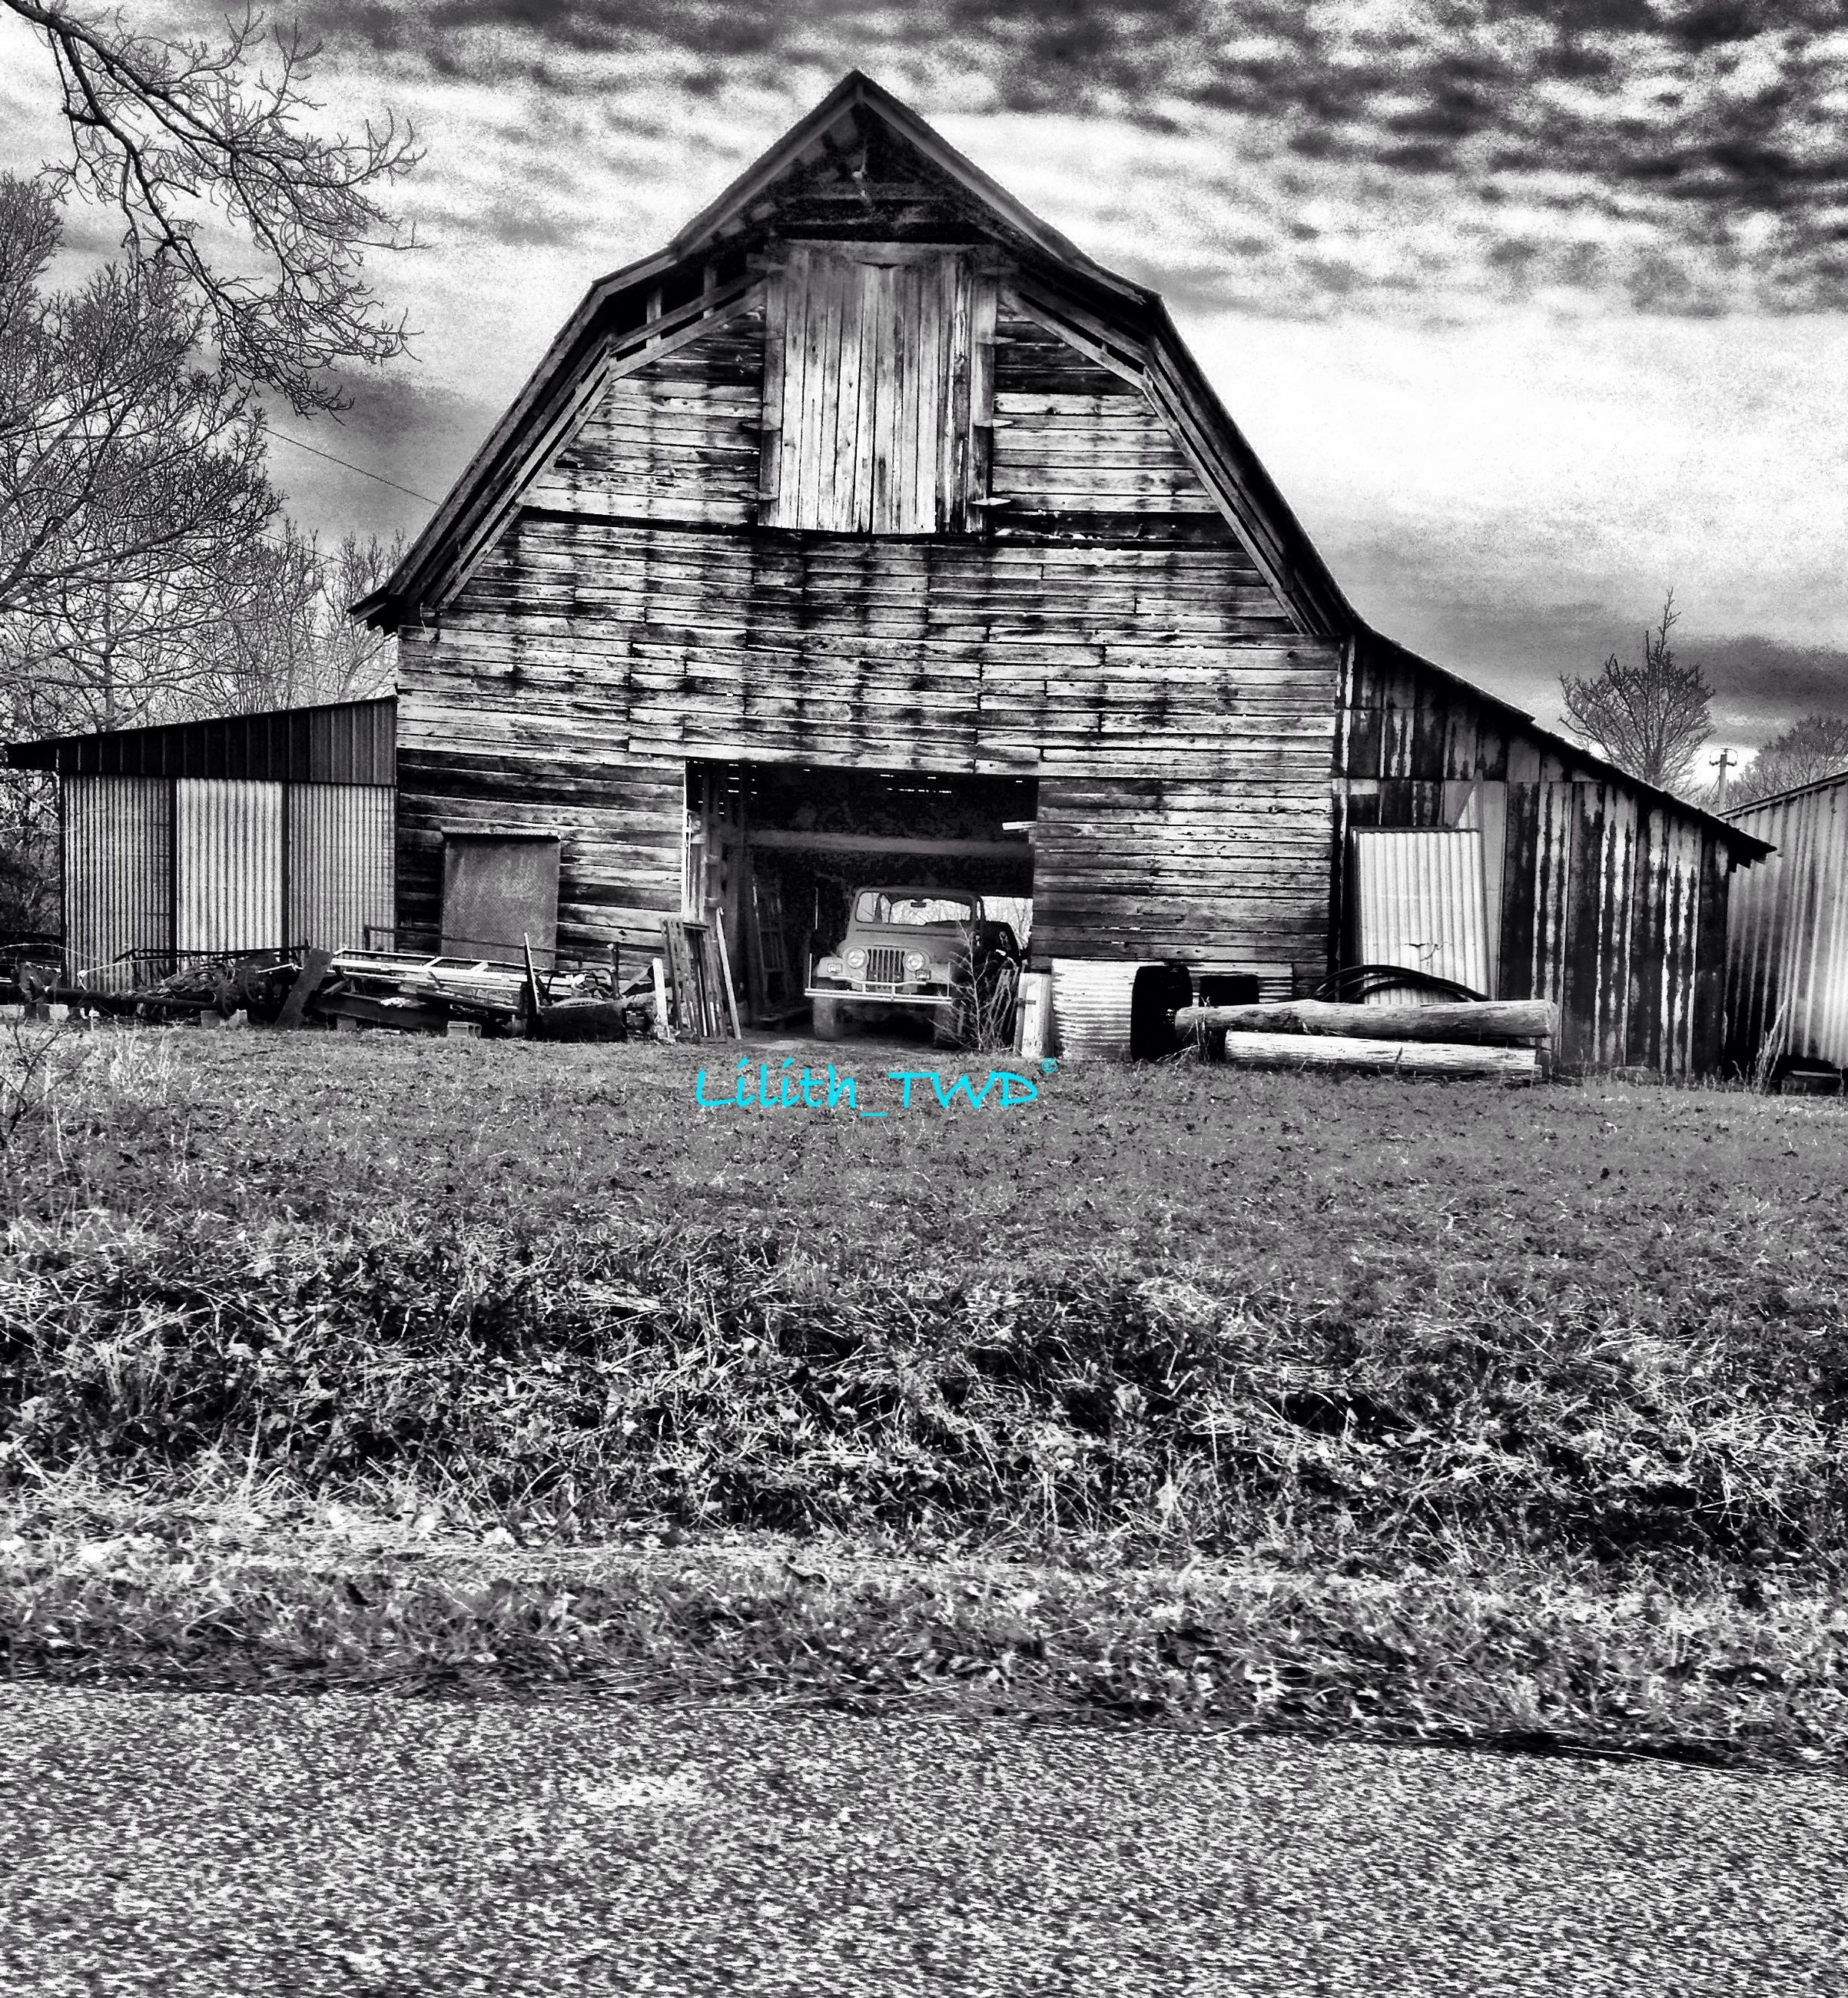 building exterior, architecture, built structure, house, residential structure, sky, abandoned, residential building, field, grass, barn, village, day, damaged, old, window, obsolete, rural scene, outdoors, no people